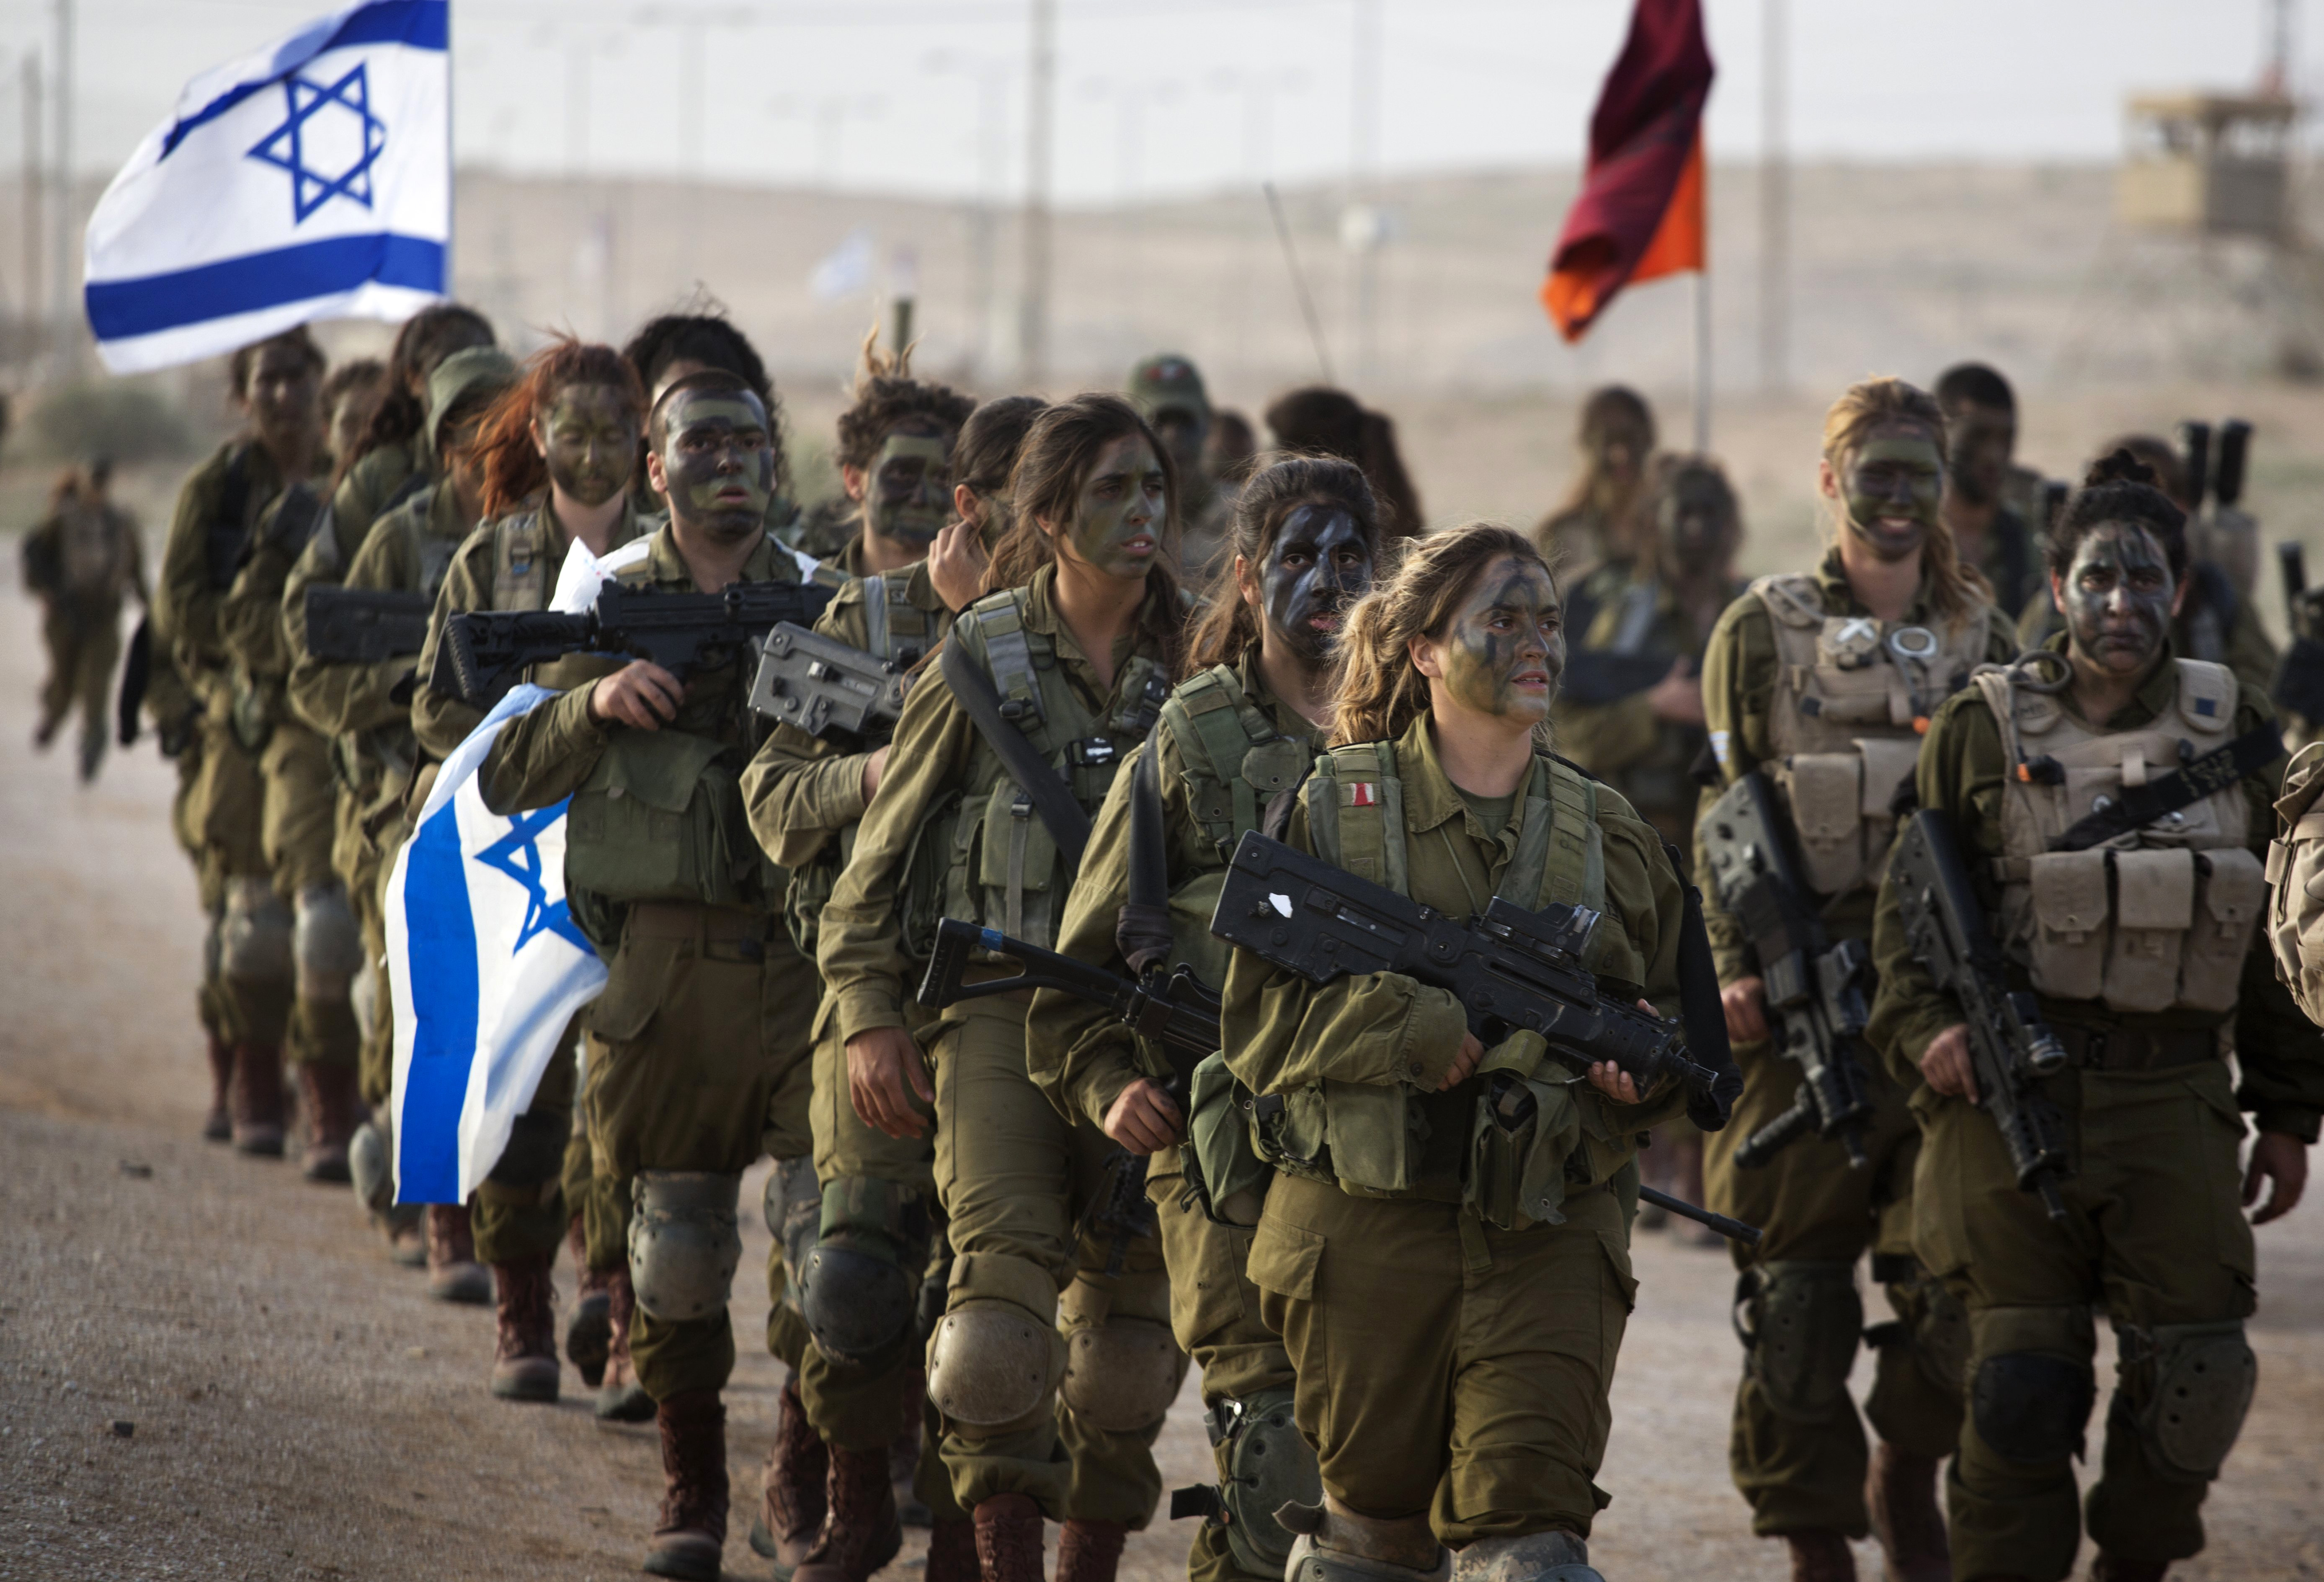 in israel, all young people of a certain age, male or female, are drafted in to mandatory military service